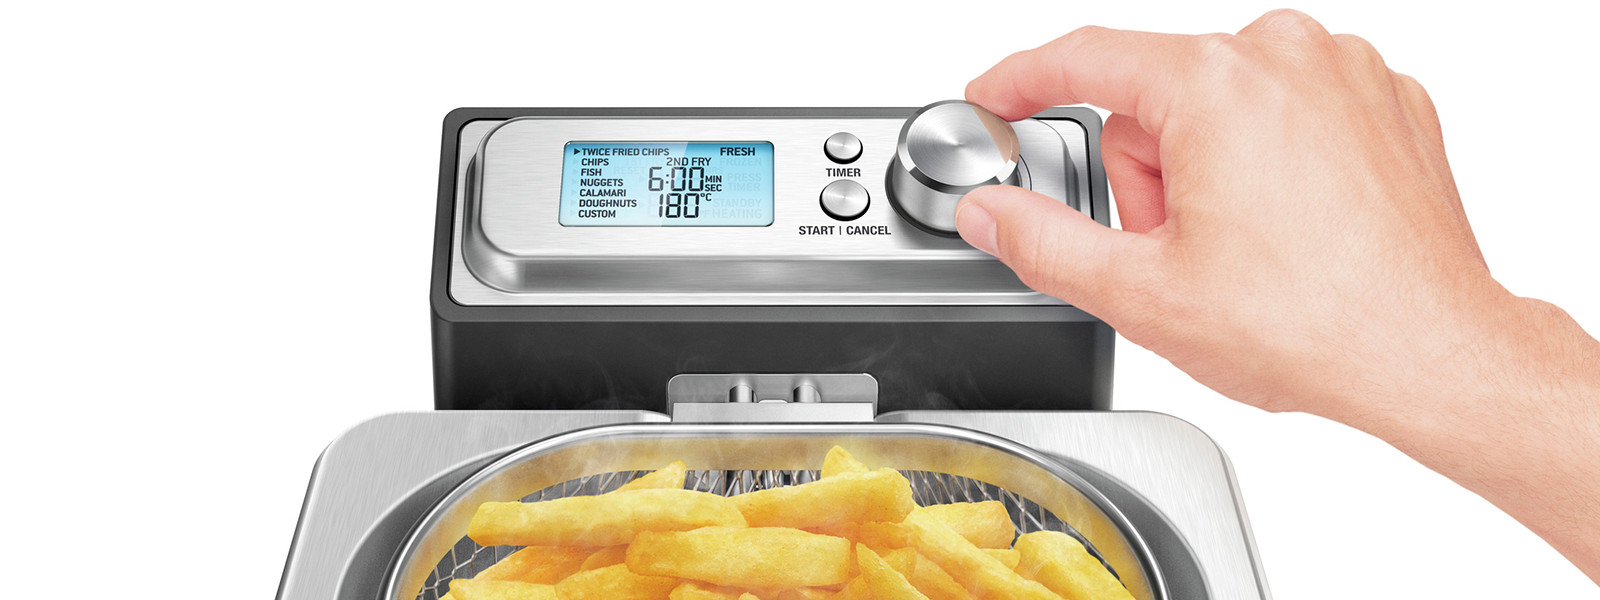 the Smart Fryer - Sage™ by Heston Blumenthal® - baggrundsbillede